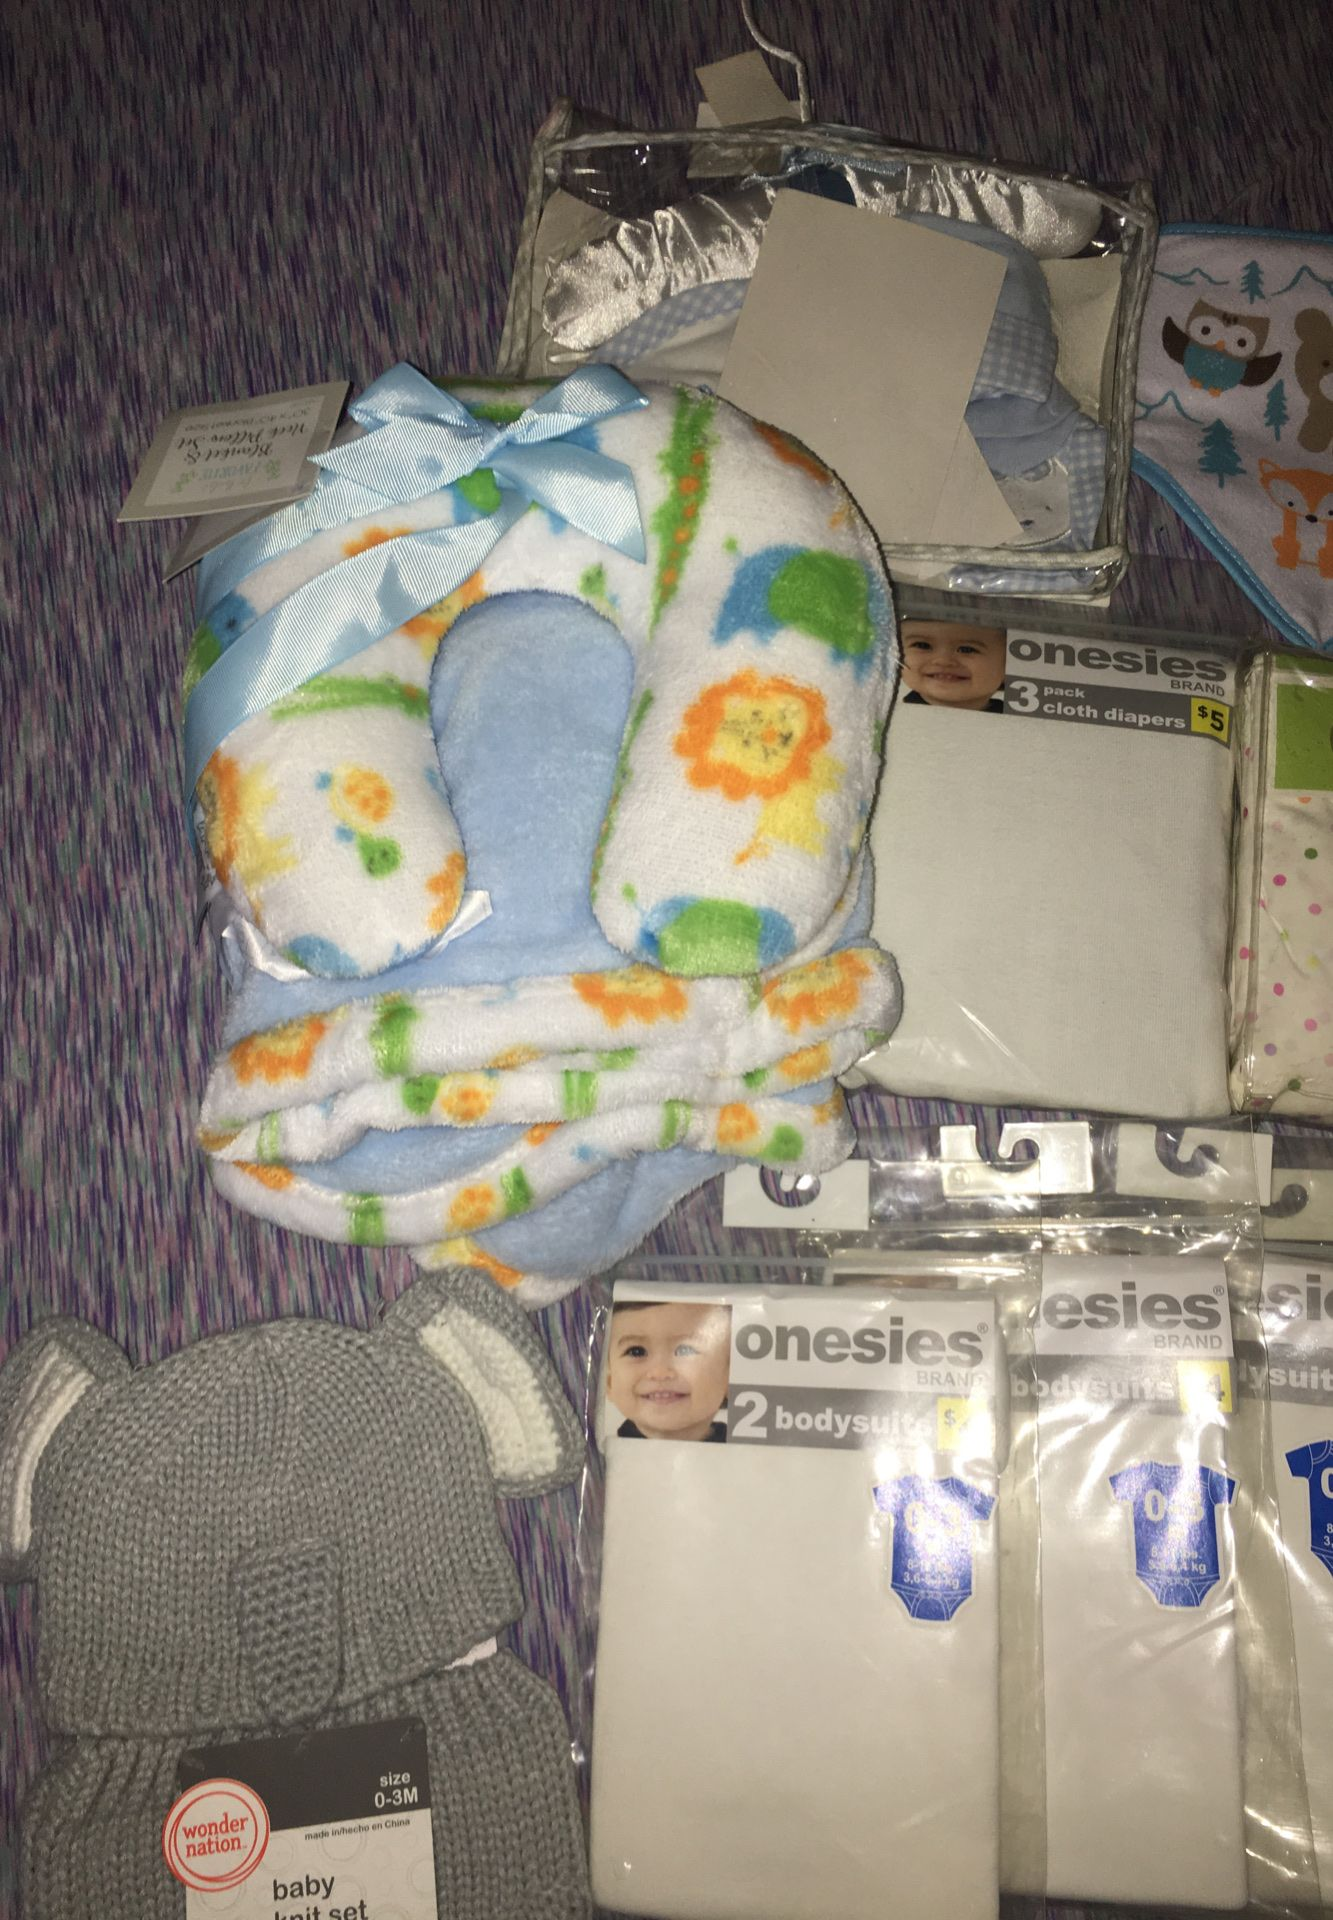 Baby onesies baby knit set baby burp clothes baby fitted crib sheet baby blanket & neck pillow set